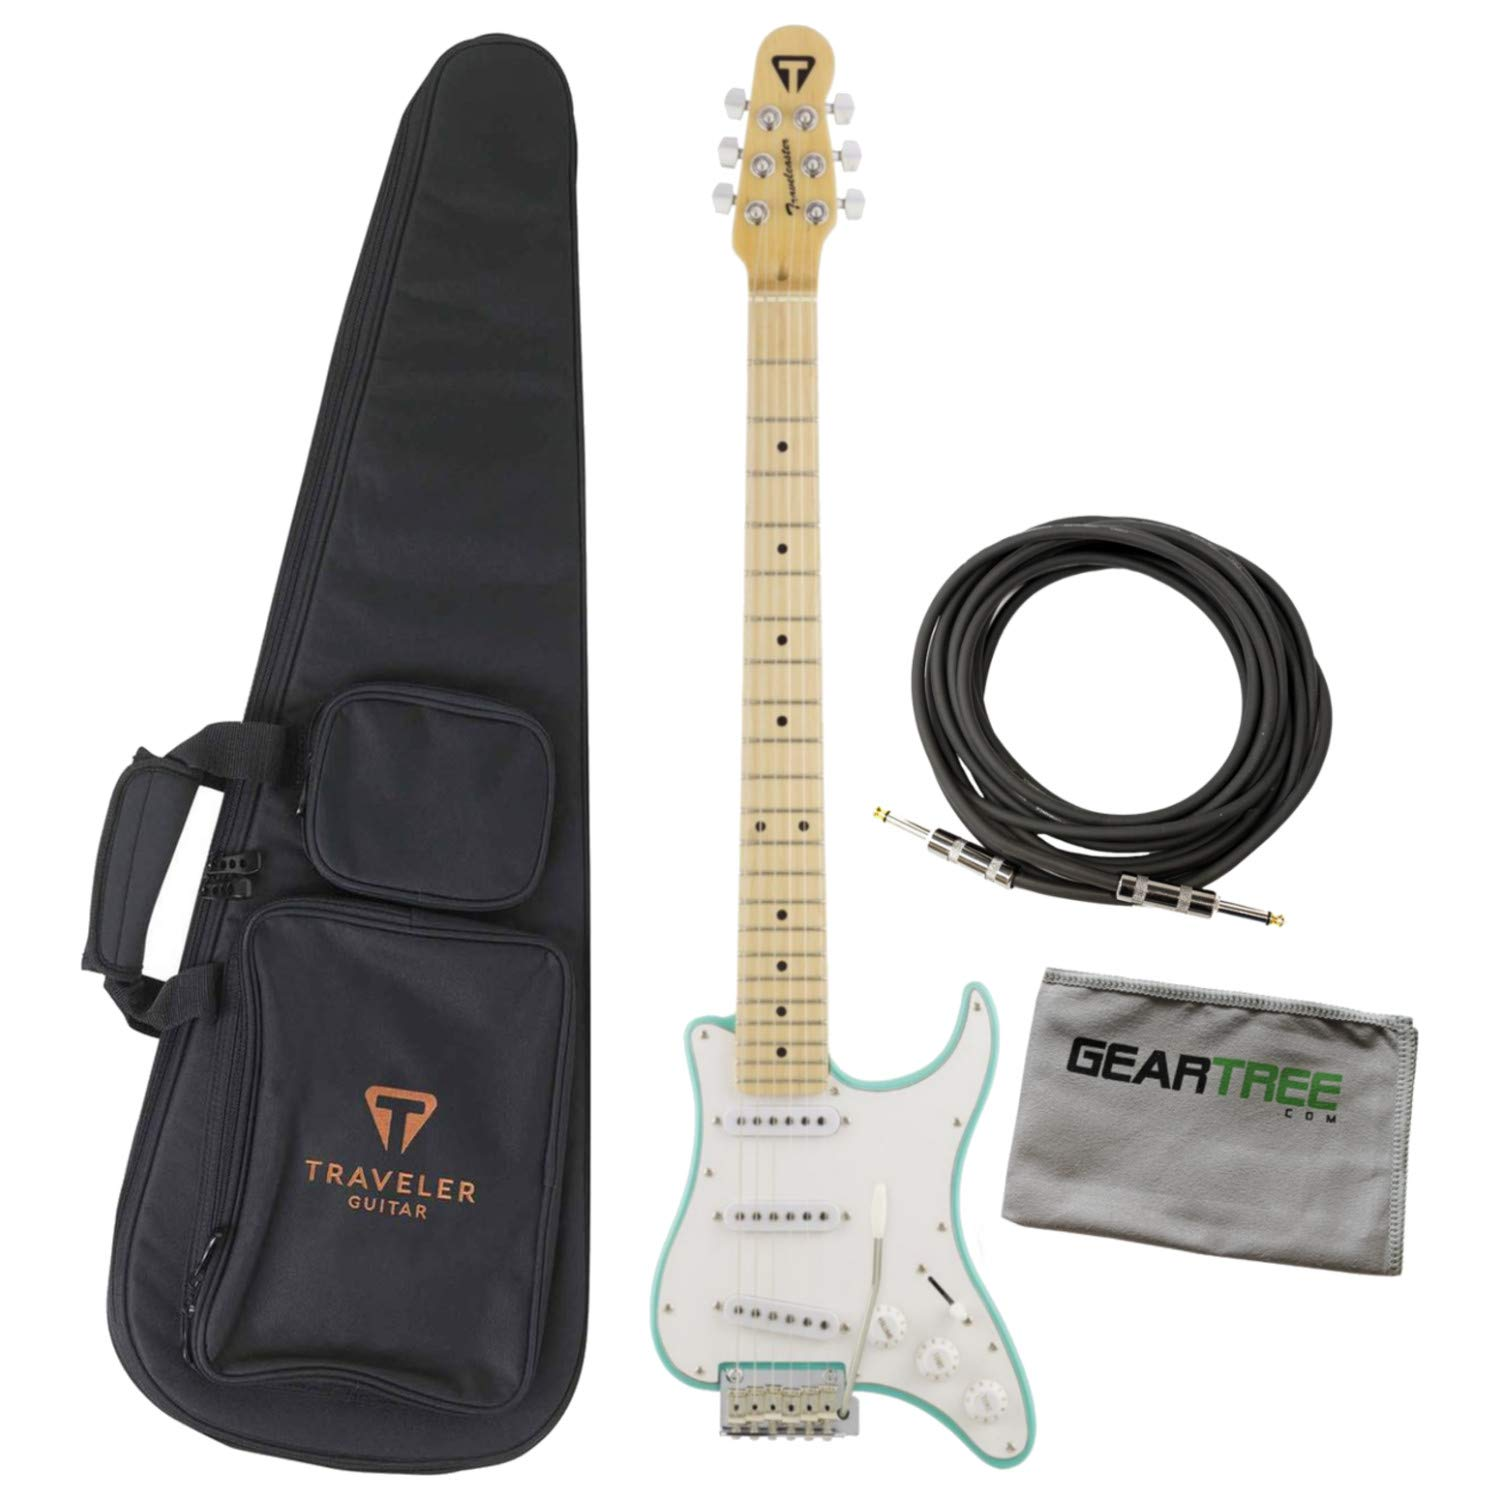 Cheap Traveler Travelcaster Deluxe Surf Green Electric Travel Guitar Bundle w/Cable an Black Friday & Cyber Monday 2019